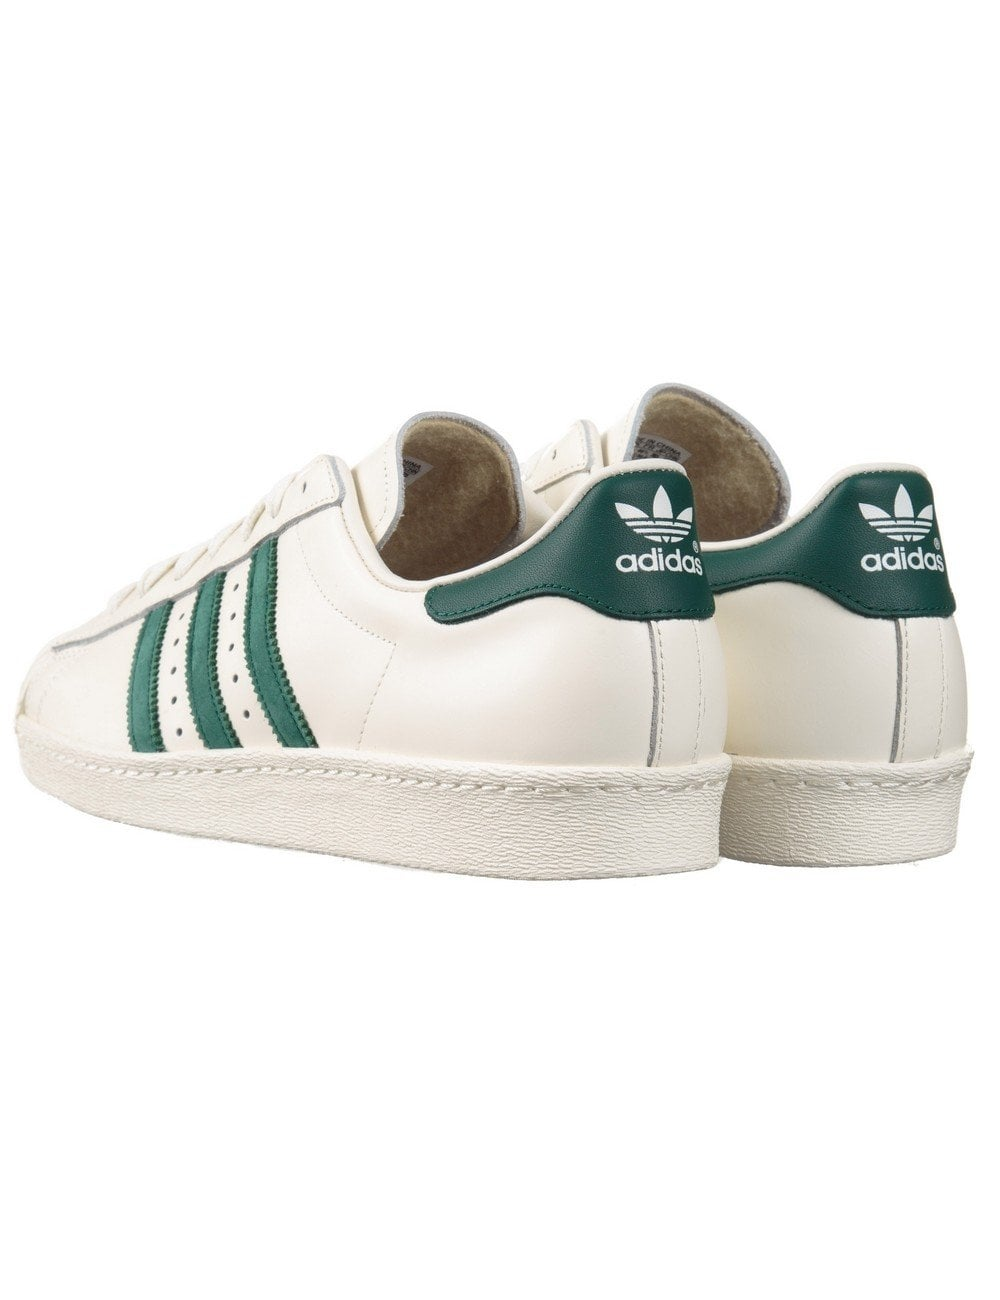 new product f5cfc 7c10f ... shopping superstar 80s delux shoes vintage white green 6bd78 8d77c